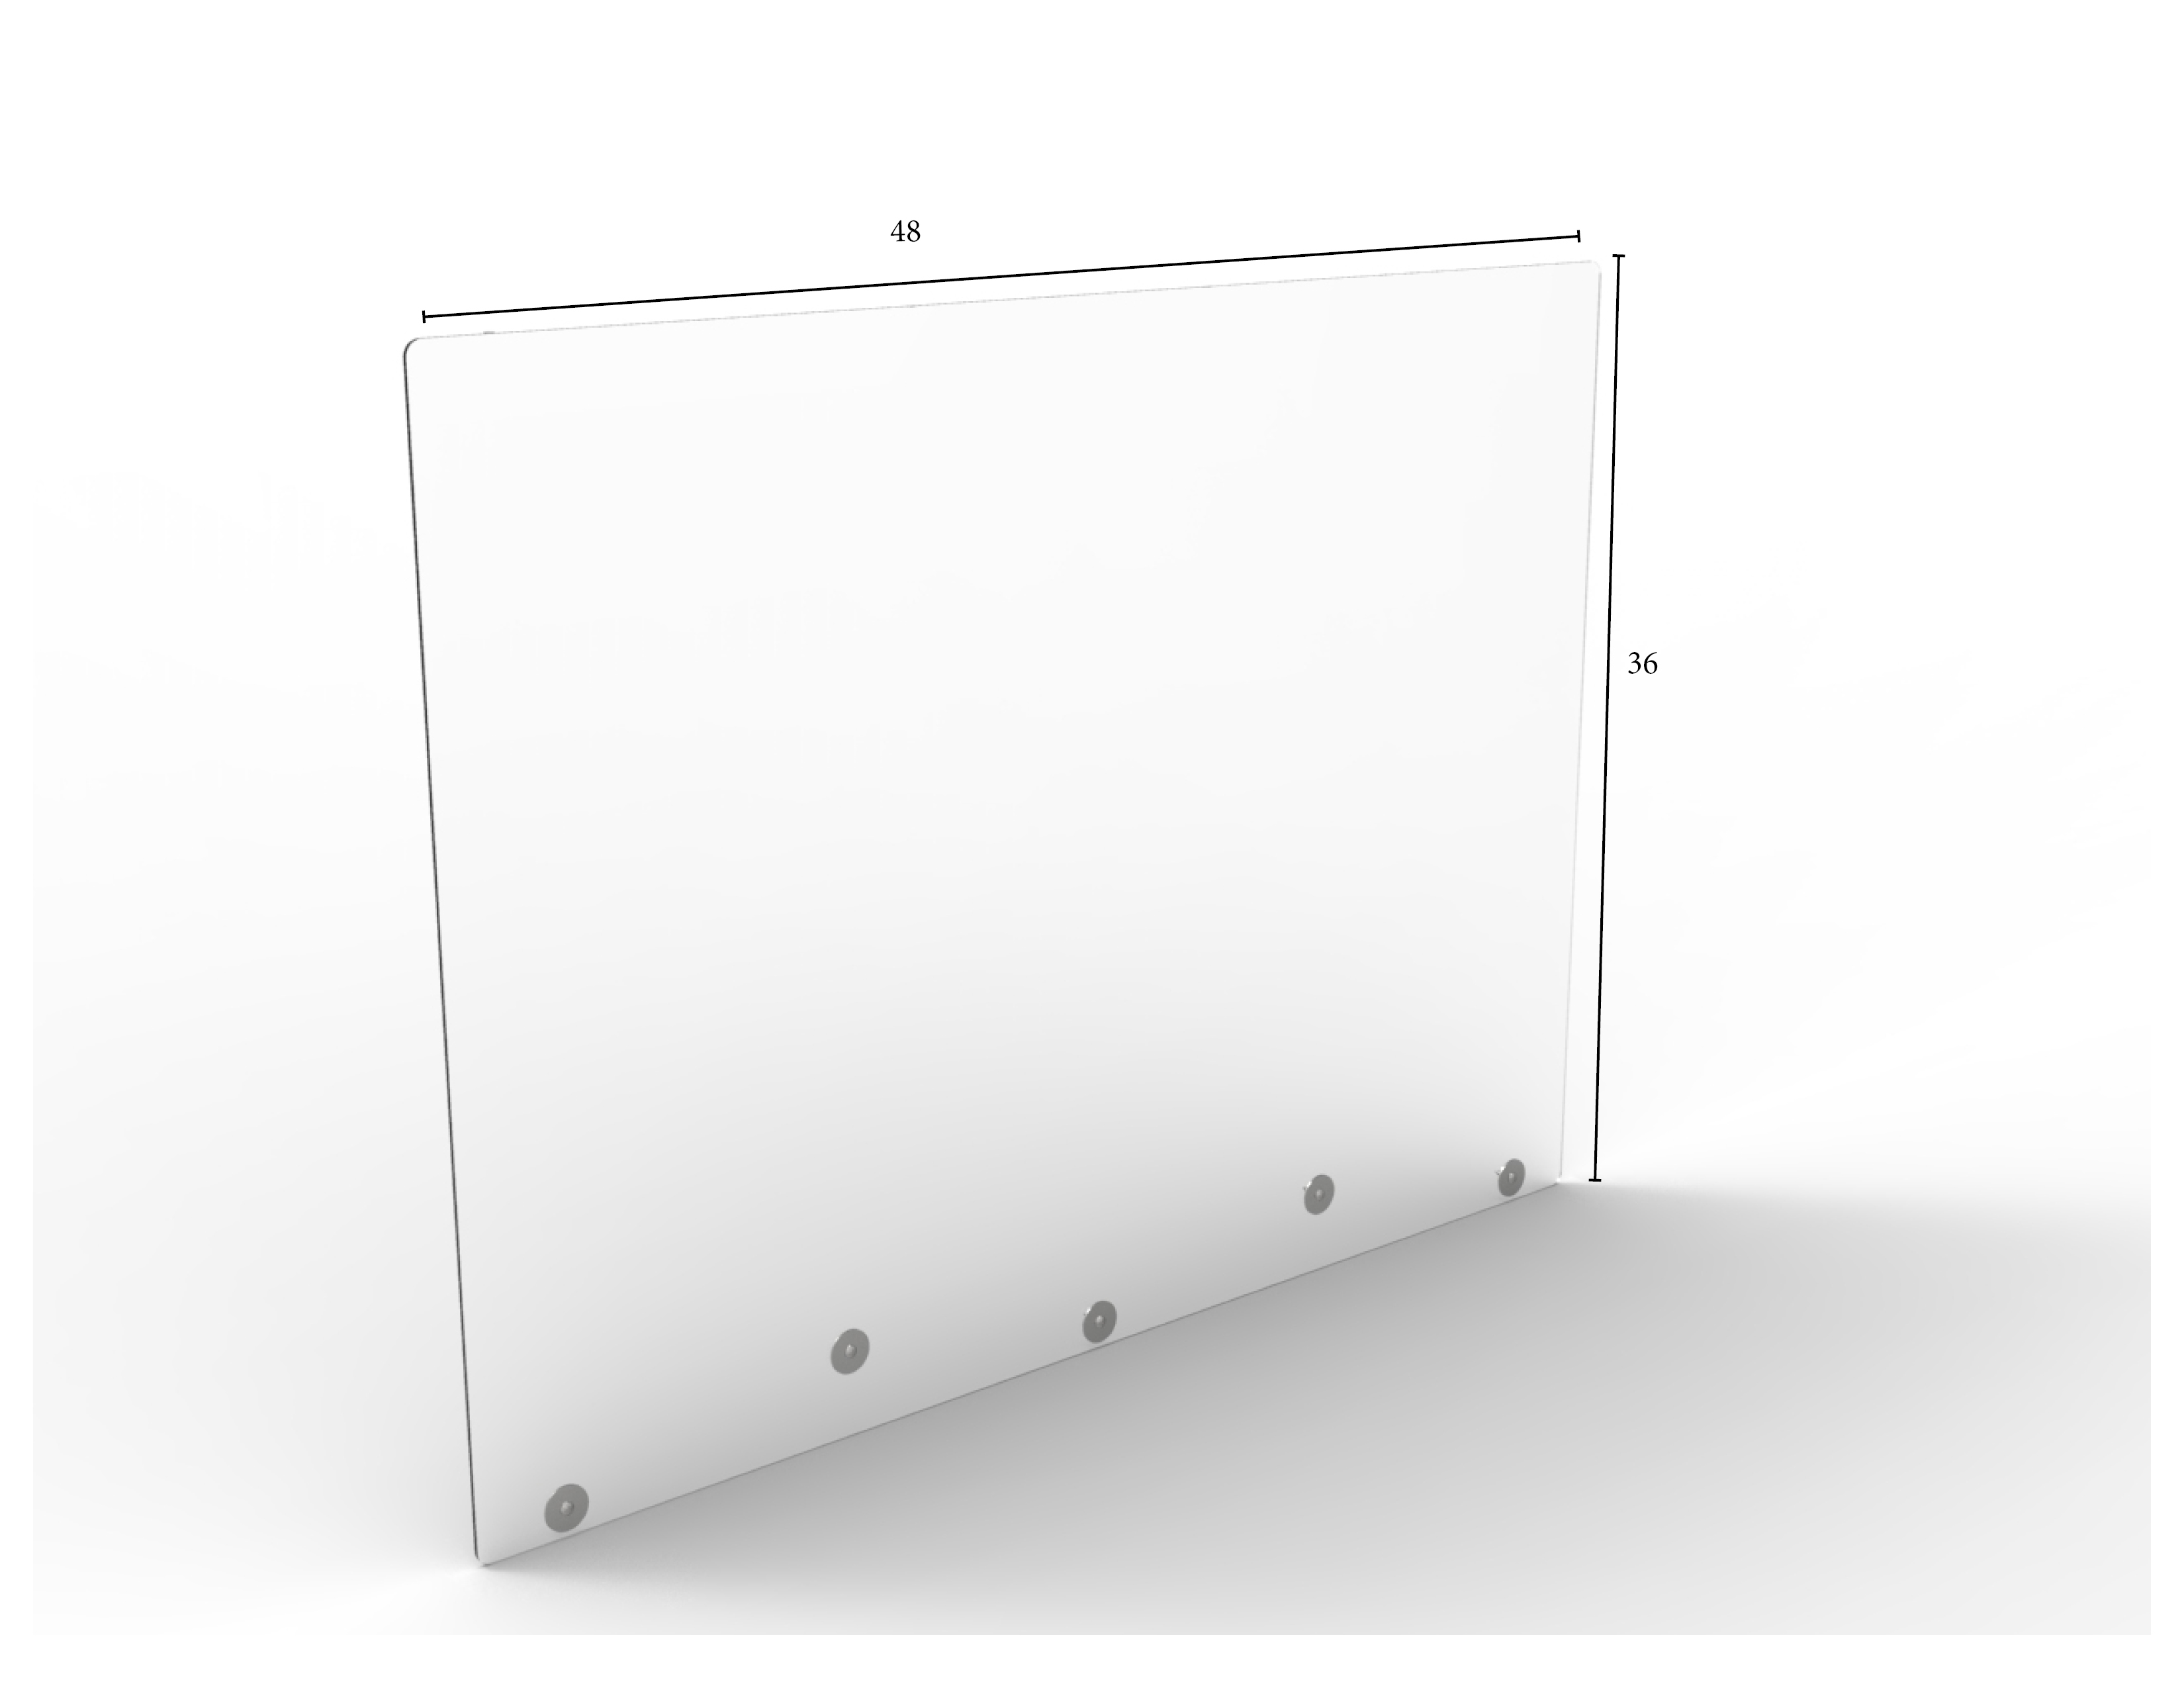 "Mountable Clear Protective Shield - 48"" W x 36"" H 